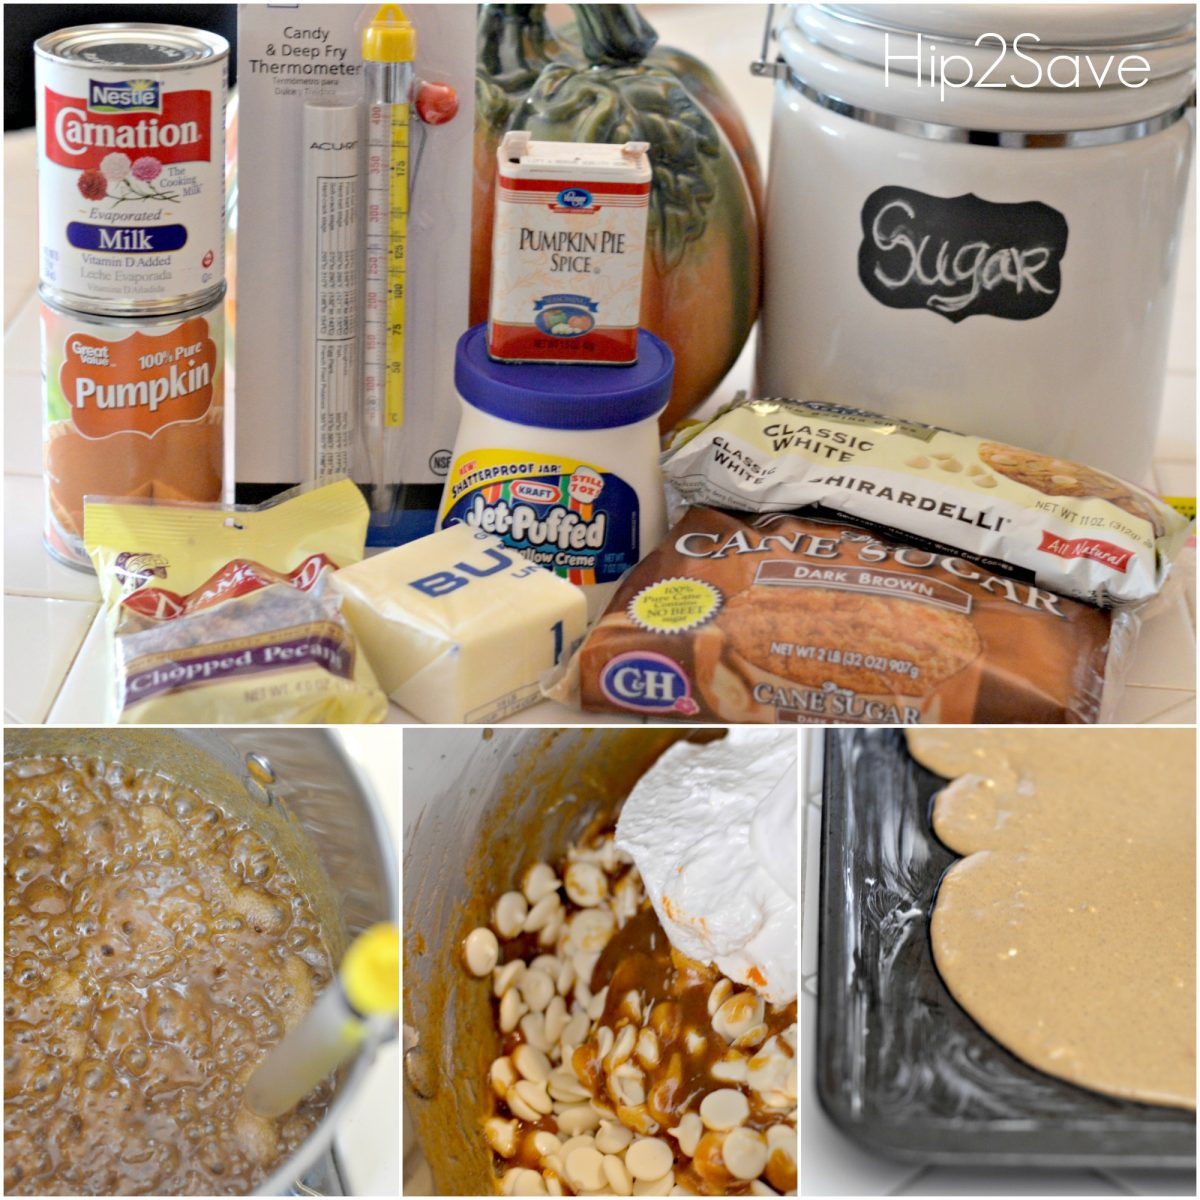 How to make pumpkin fudge ingredients plus steps showing the process